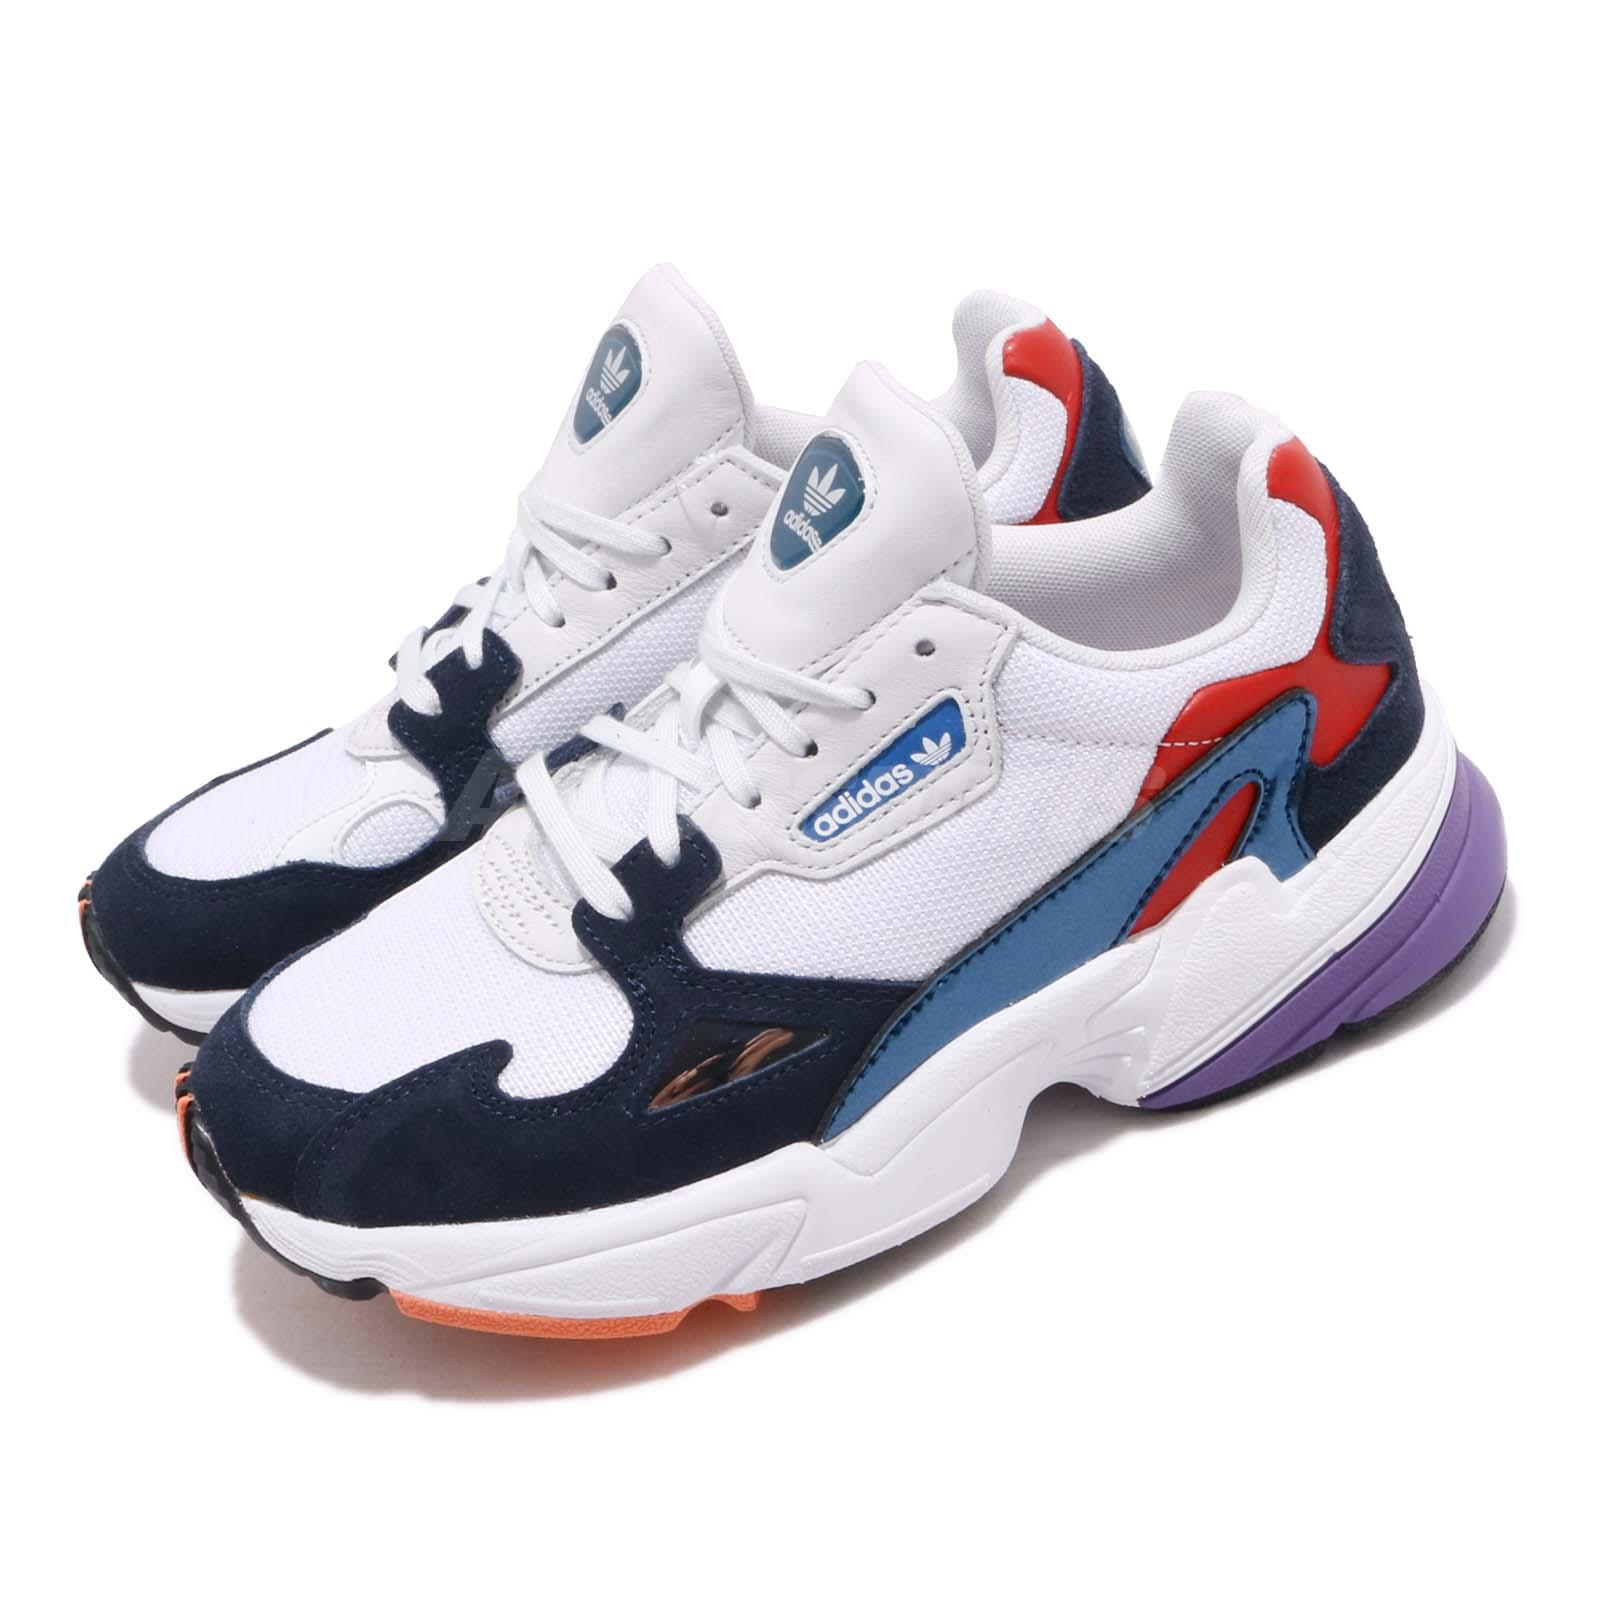 Details about adidas Originals Falcon W White Navy Red Purple Women Lifestyle Shoes CG6246